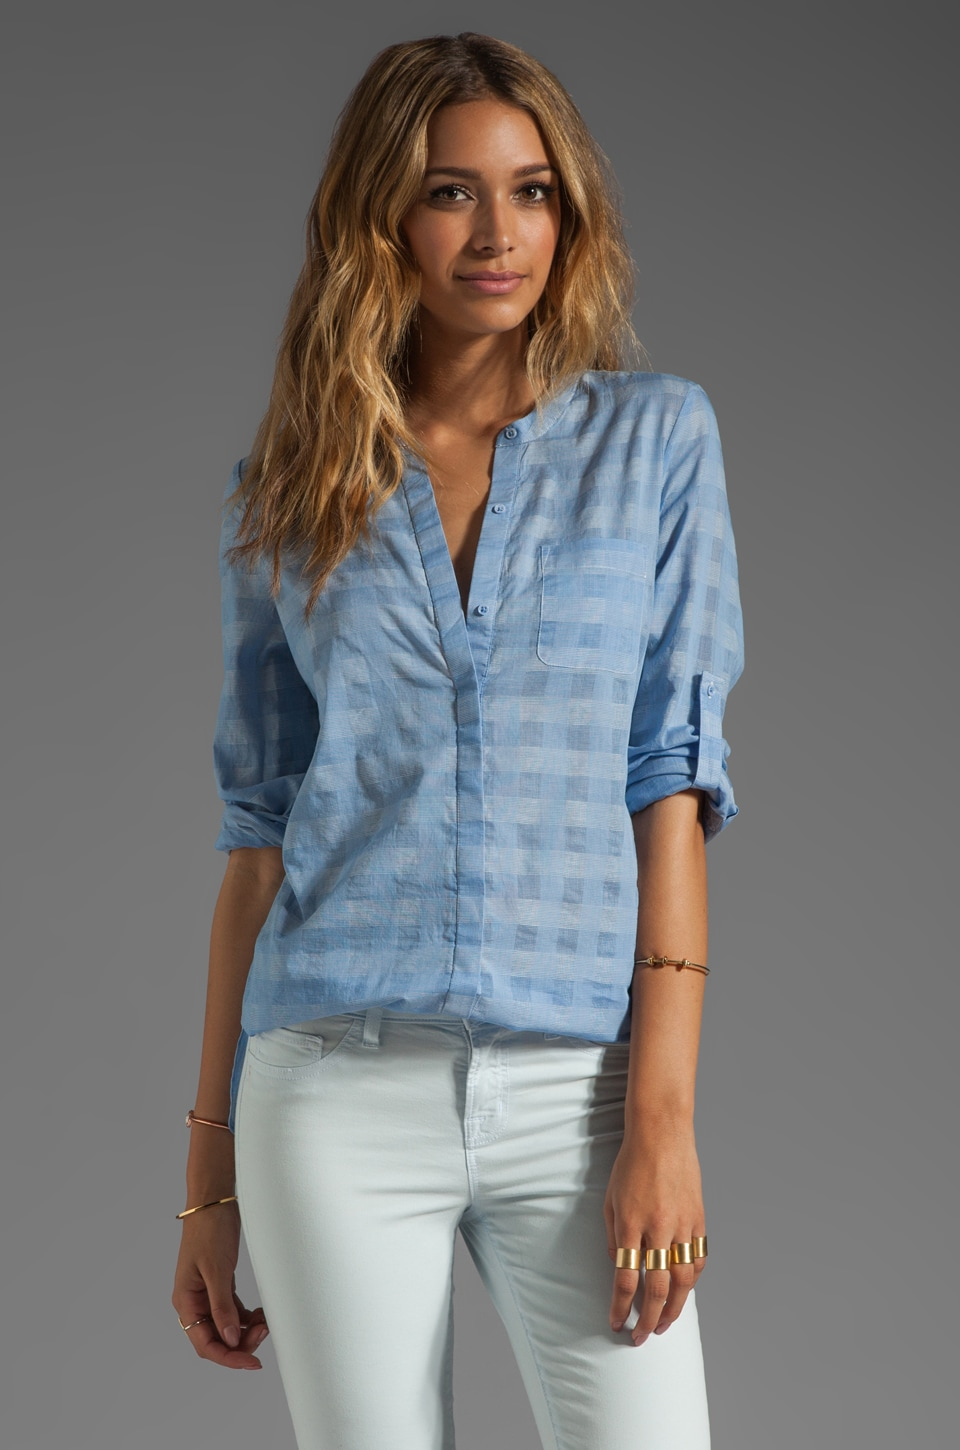 Joie Ceres B Plaid Top in Marlin